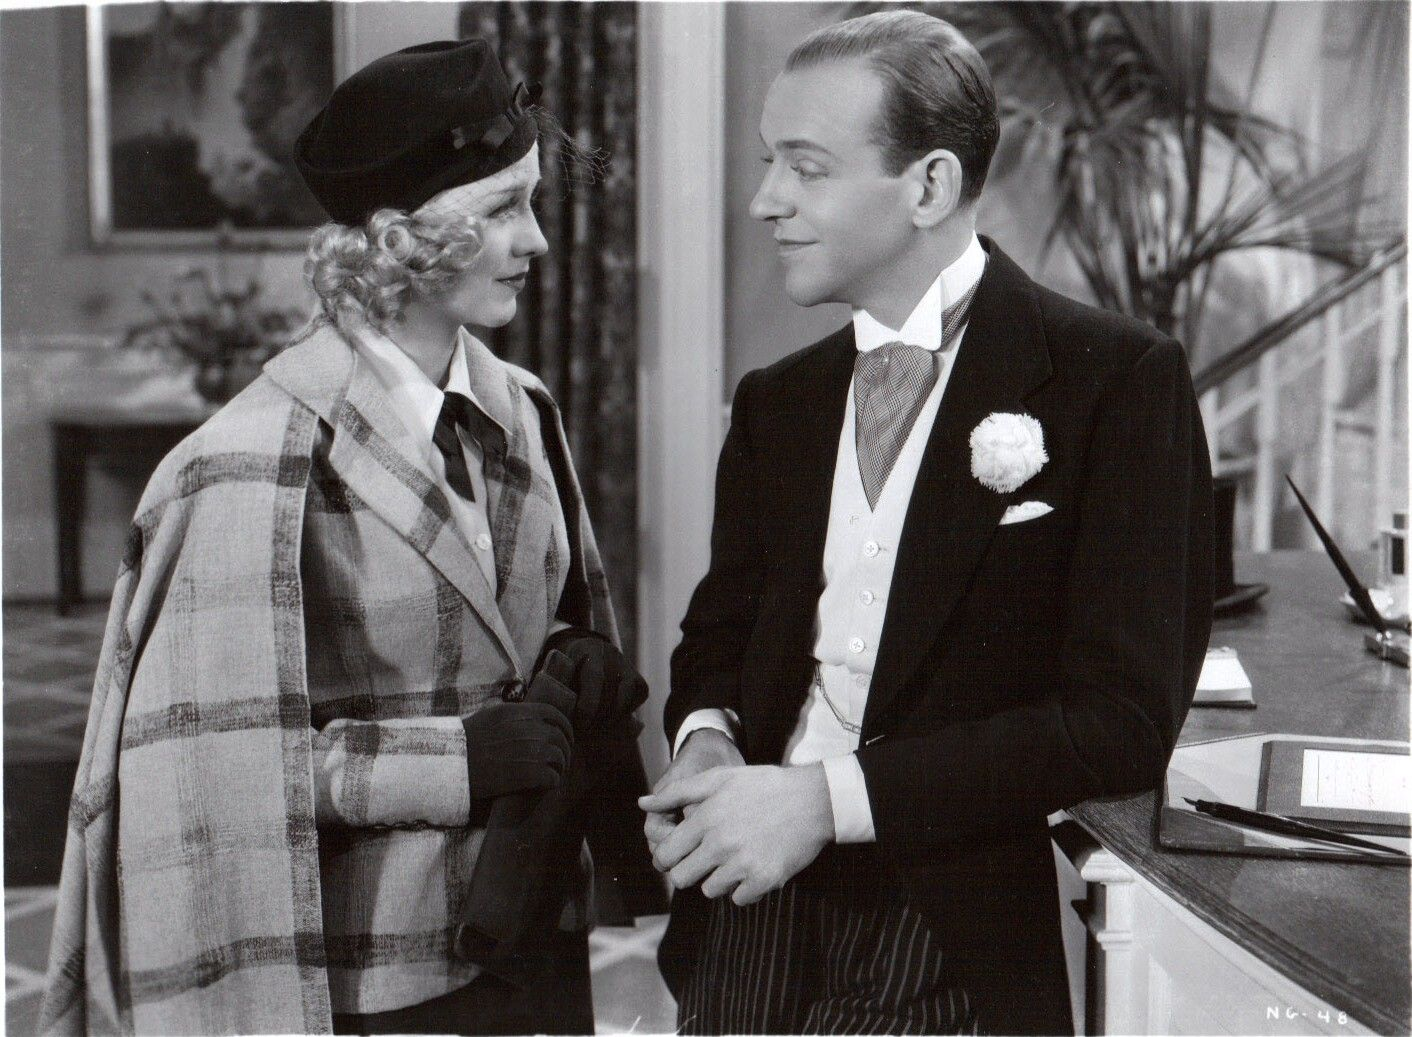 Ginger Rogers Swing Time 1936 Fred and ginger